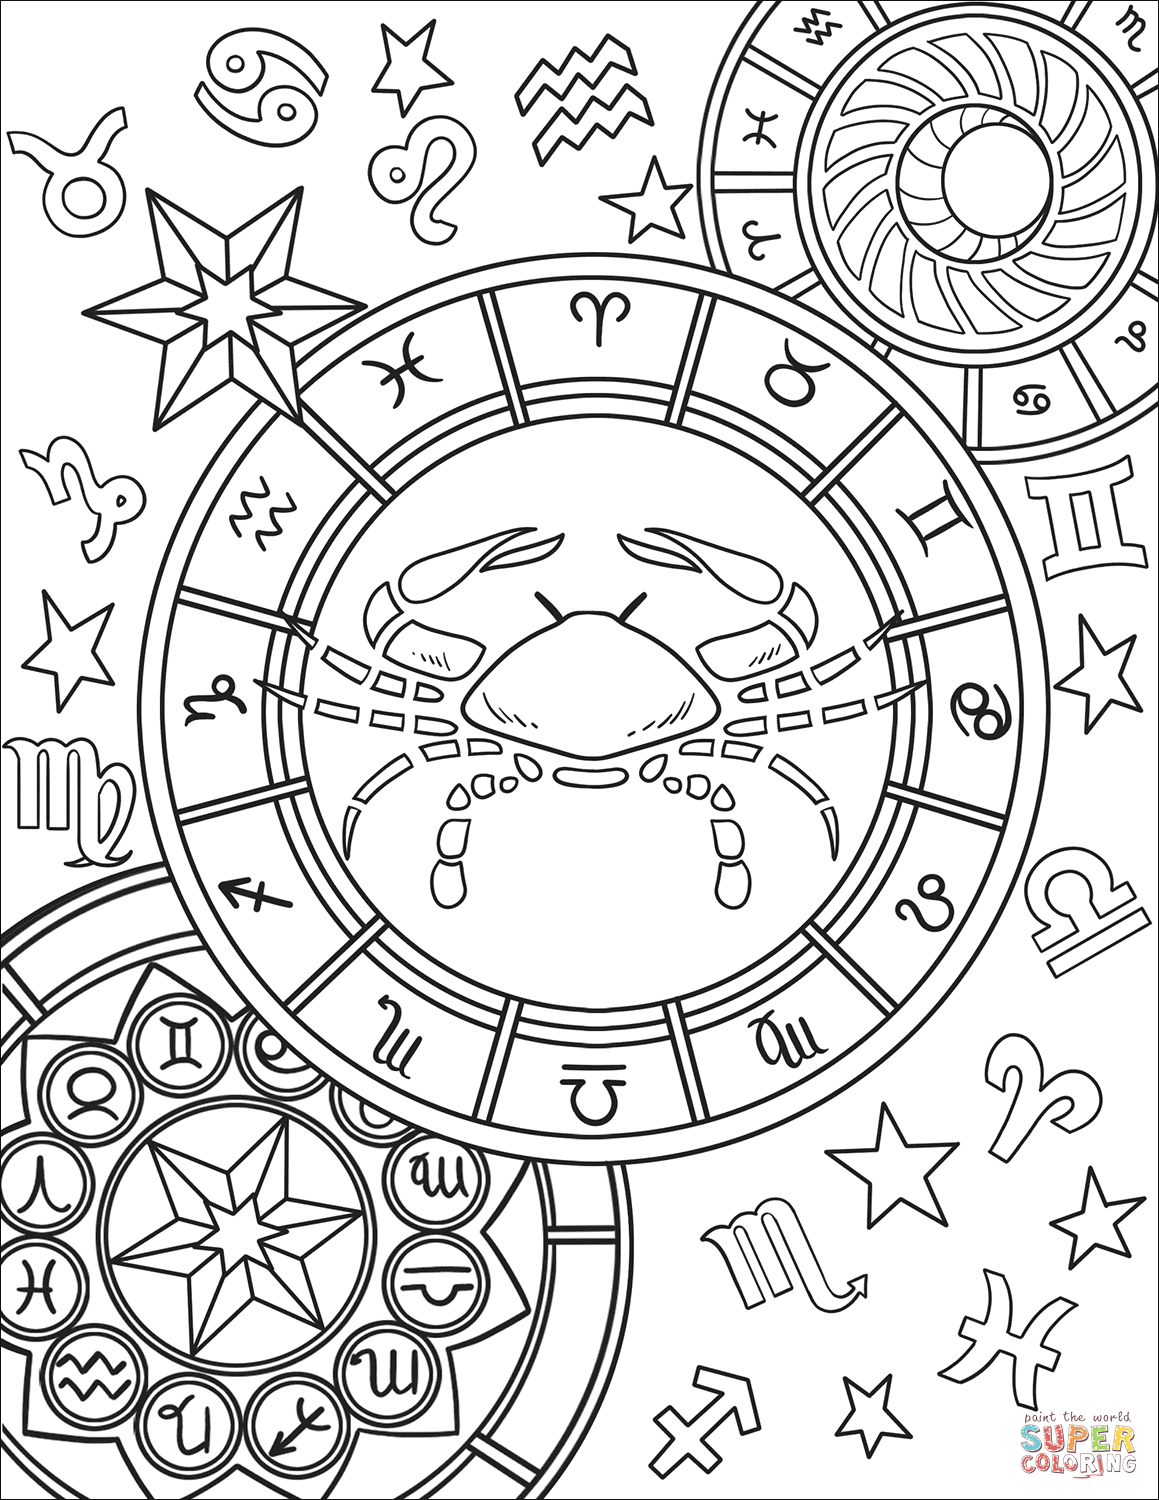 cancer zodiac sign coloring pages zodiac coloring pages doodle art alley sign pages coloring zodiac cancer